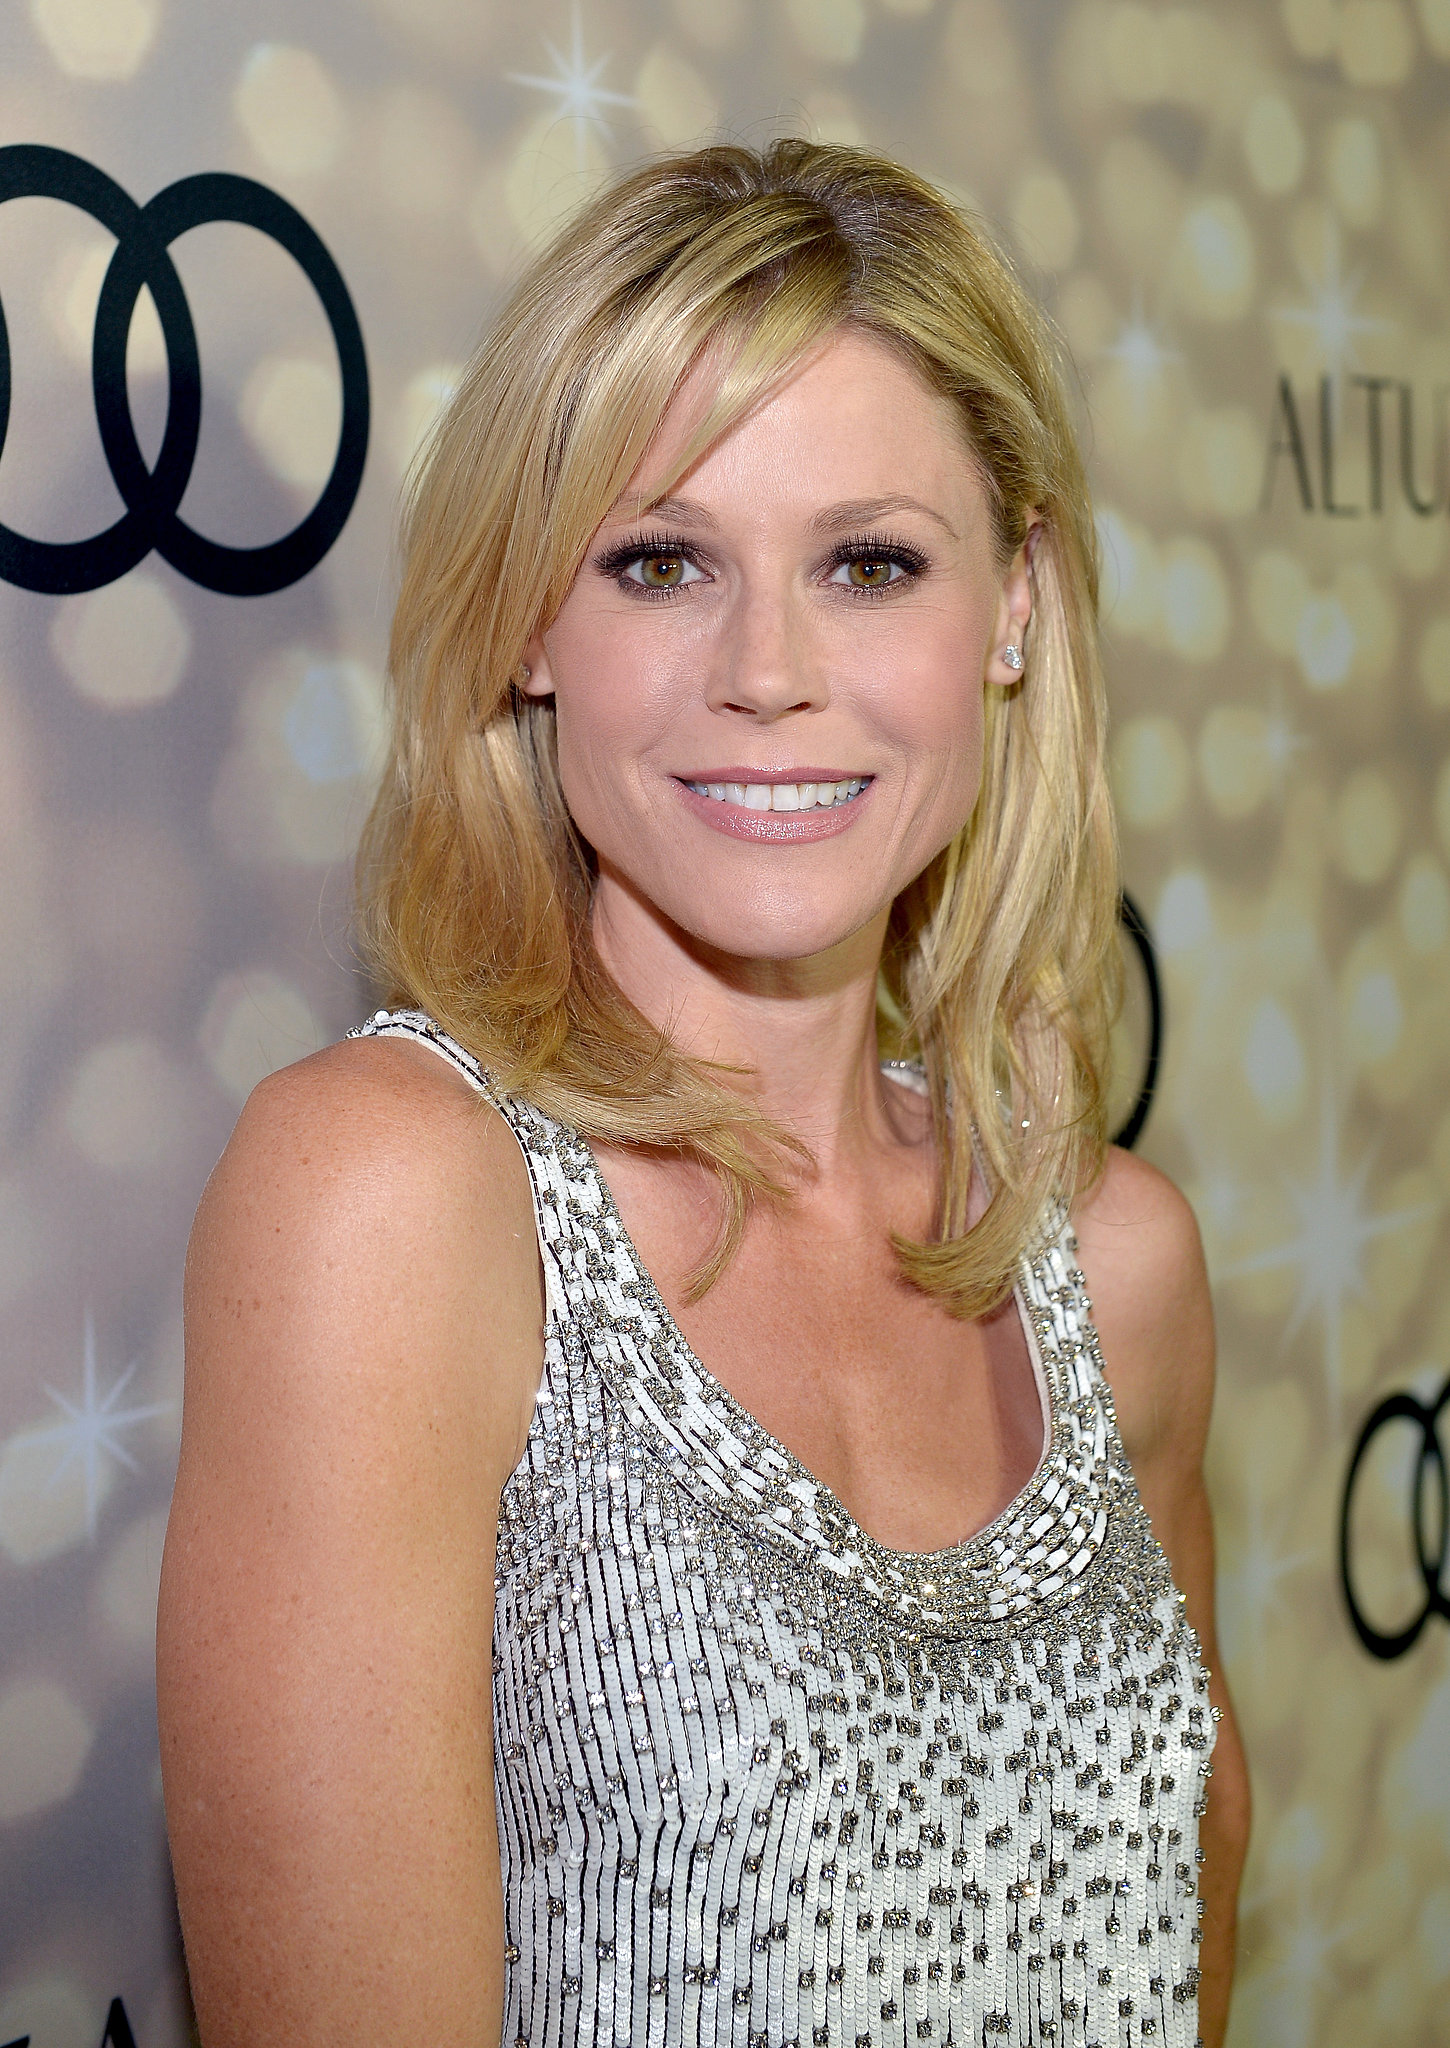 We loved Julie Bowen's signature blond waves a